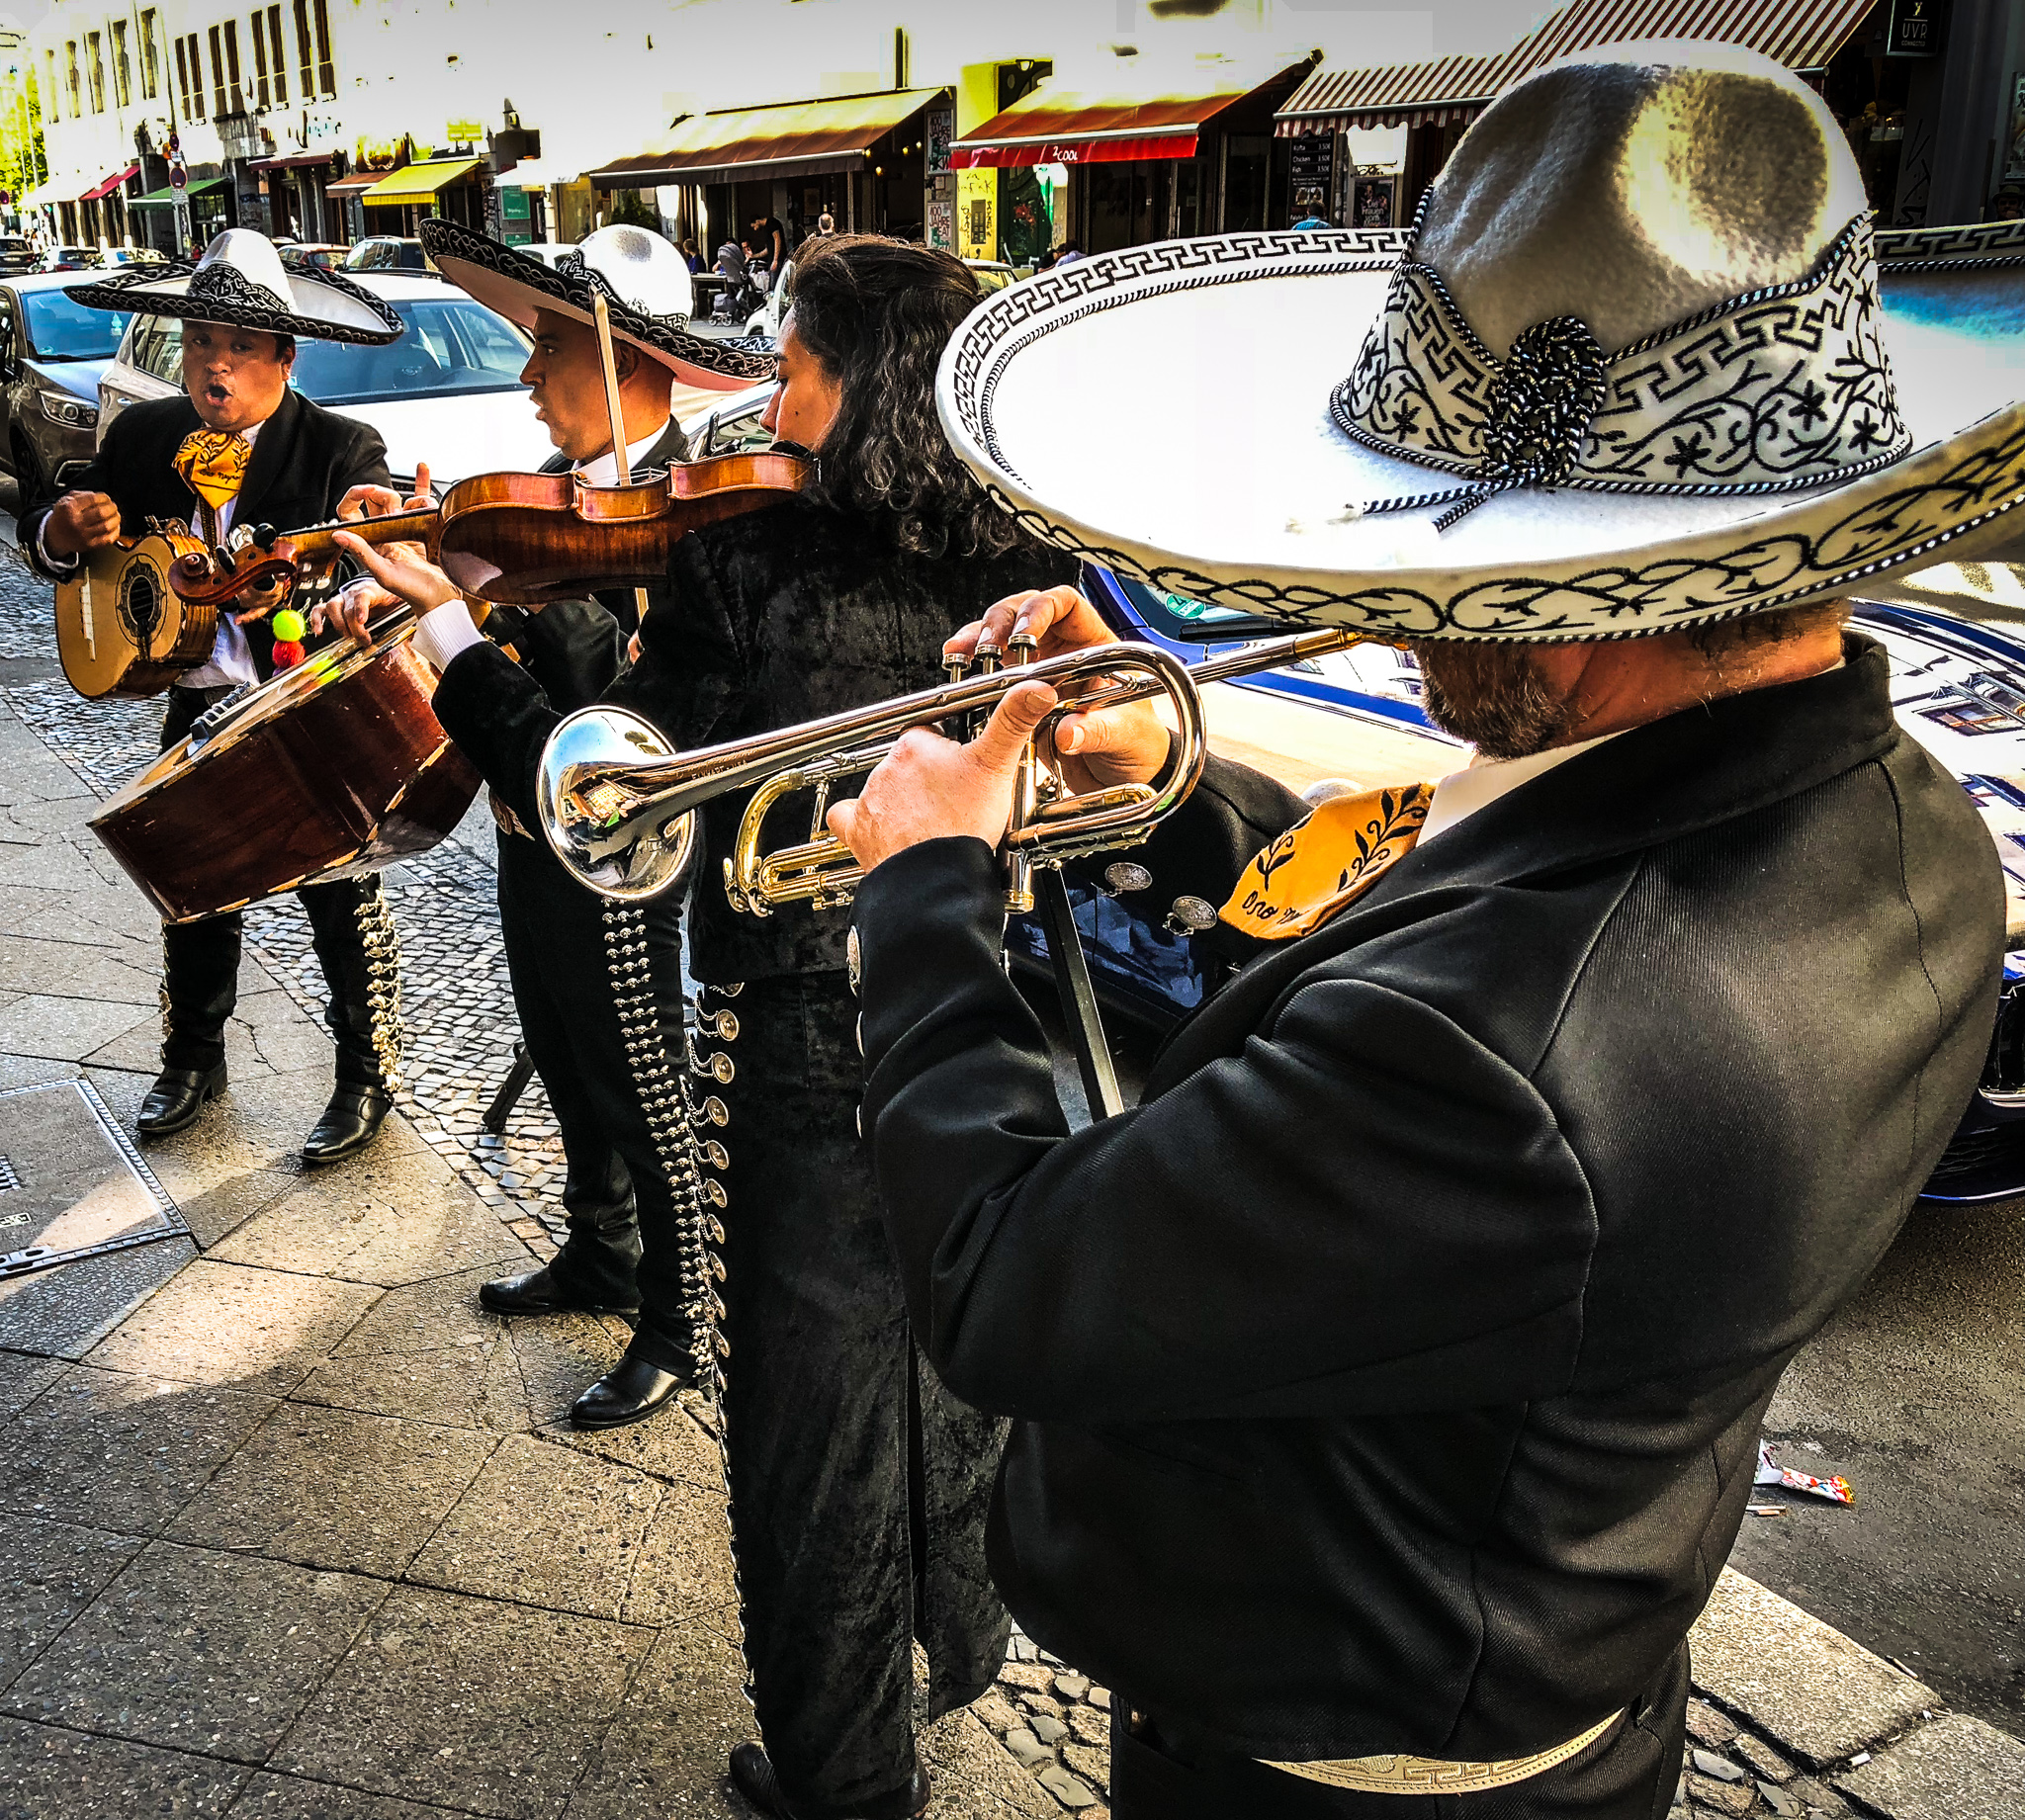 Mexican band playing on the street in Kreuzberg